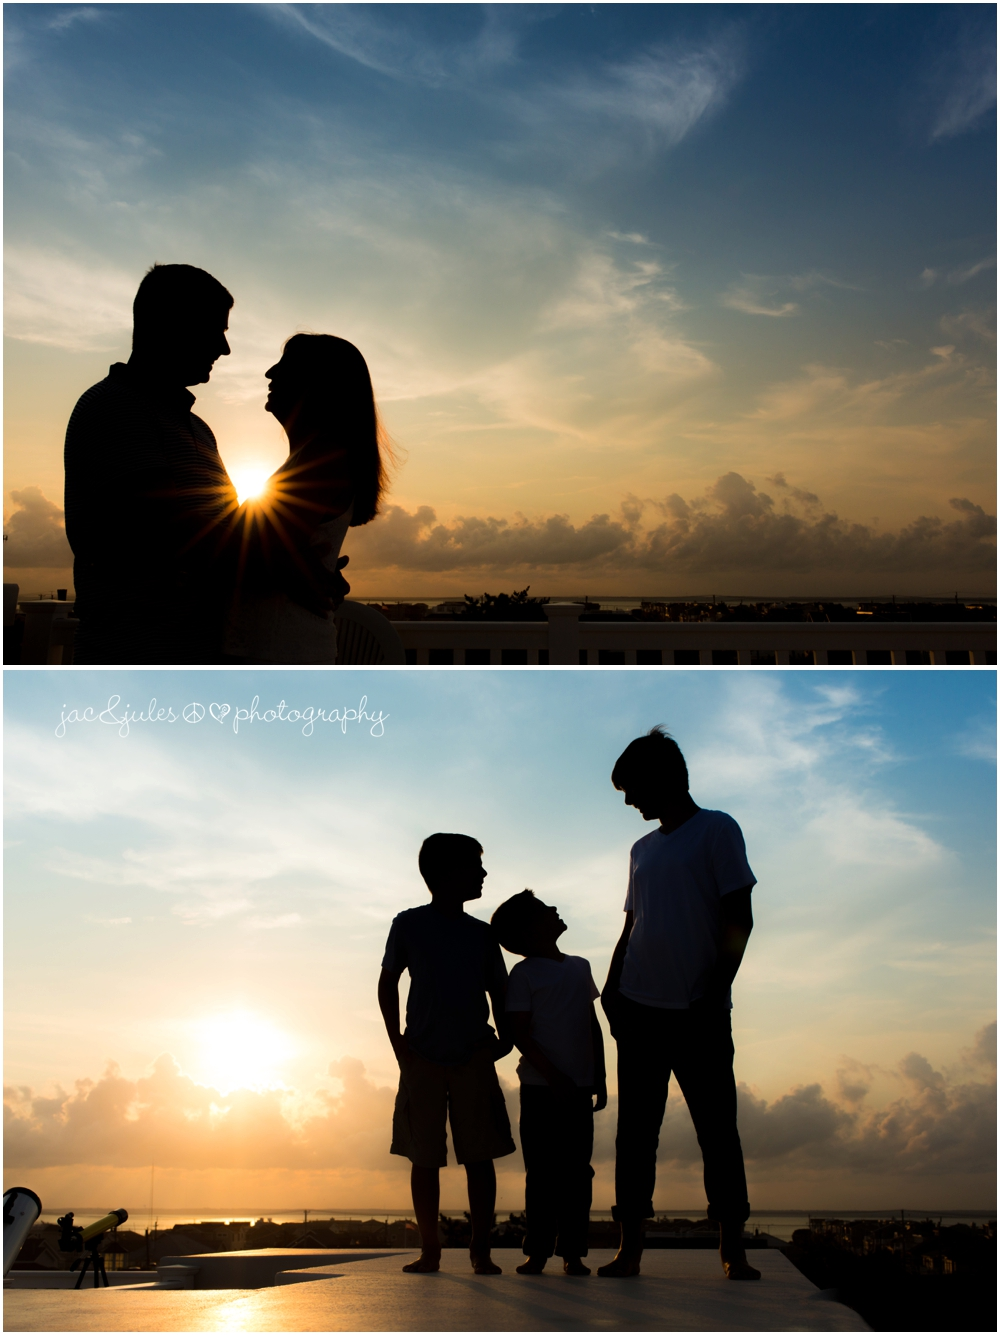 jacnjules photographs a fun family during sunset in LBI (Long Beach Island)